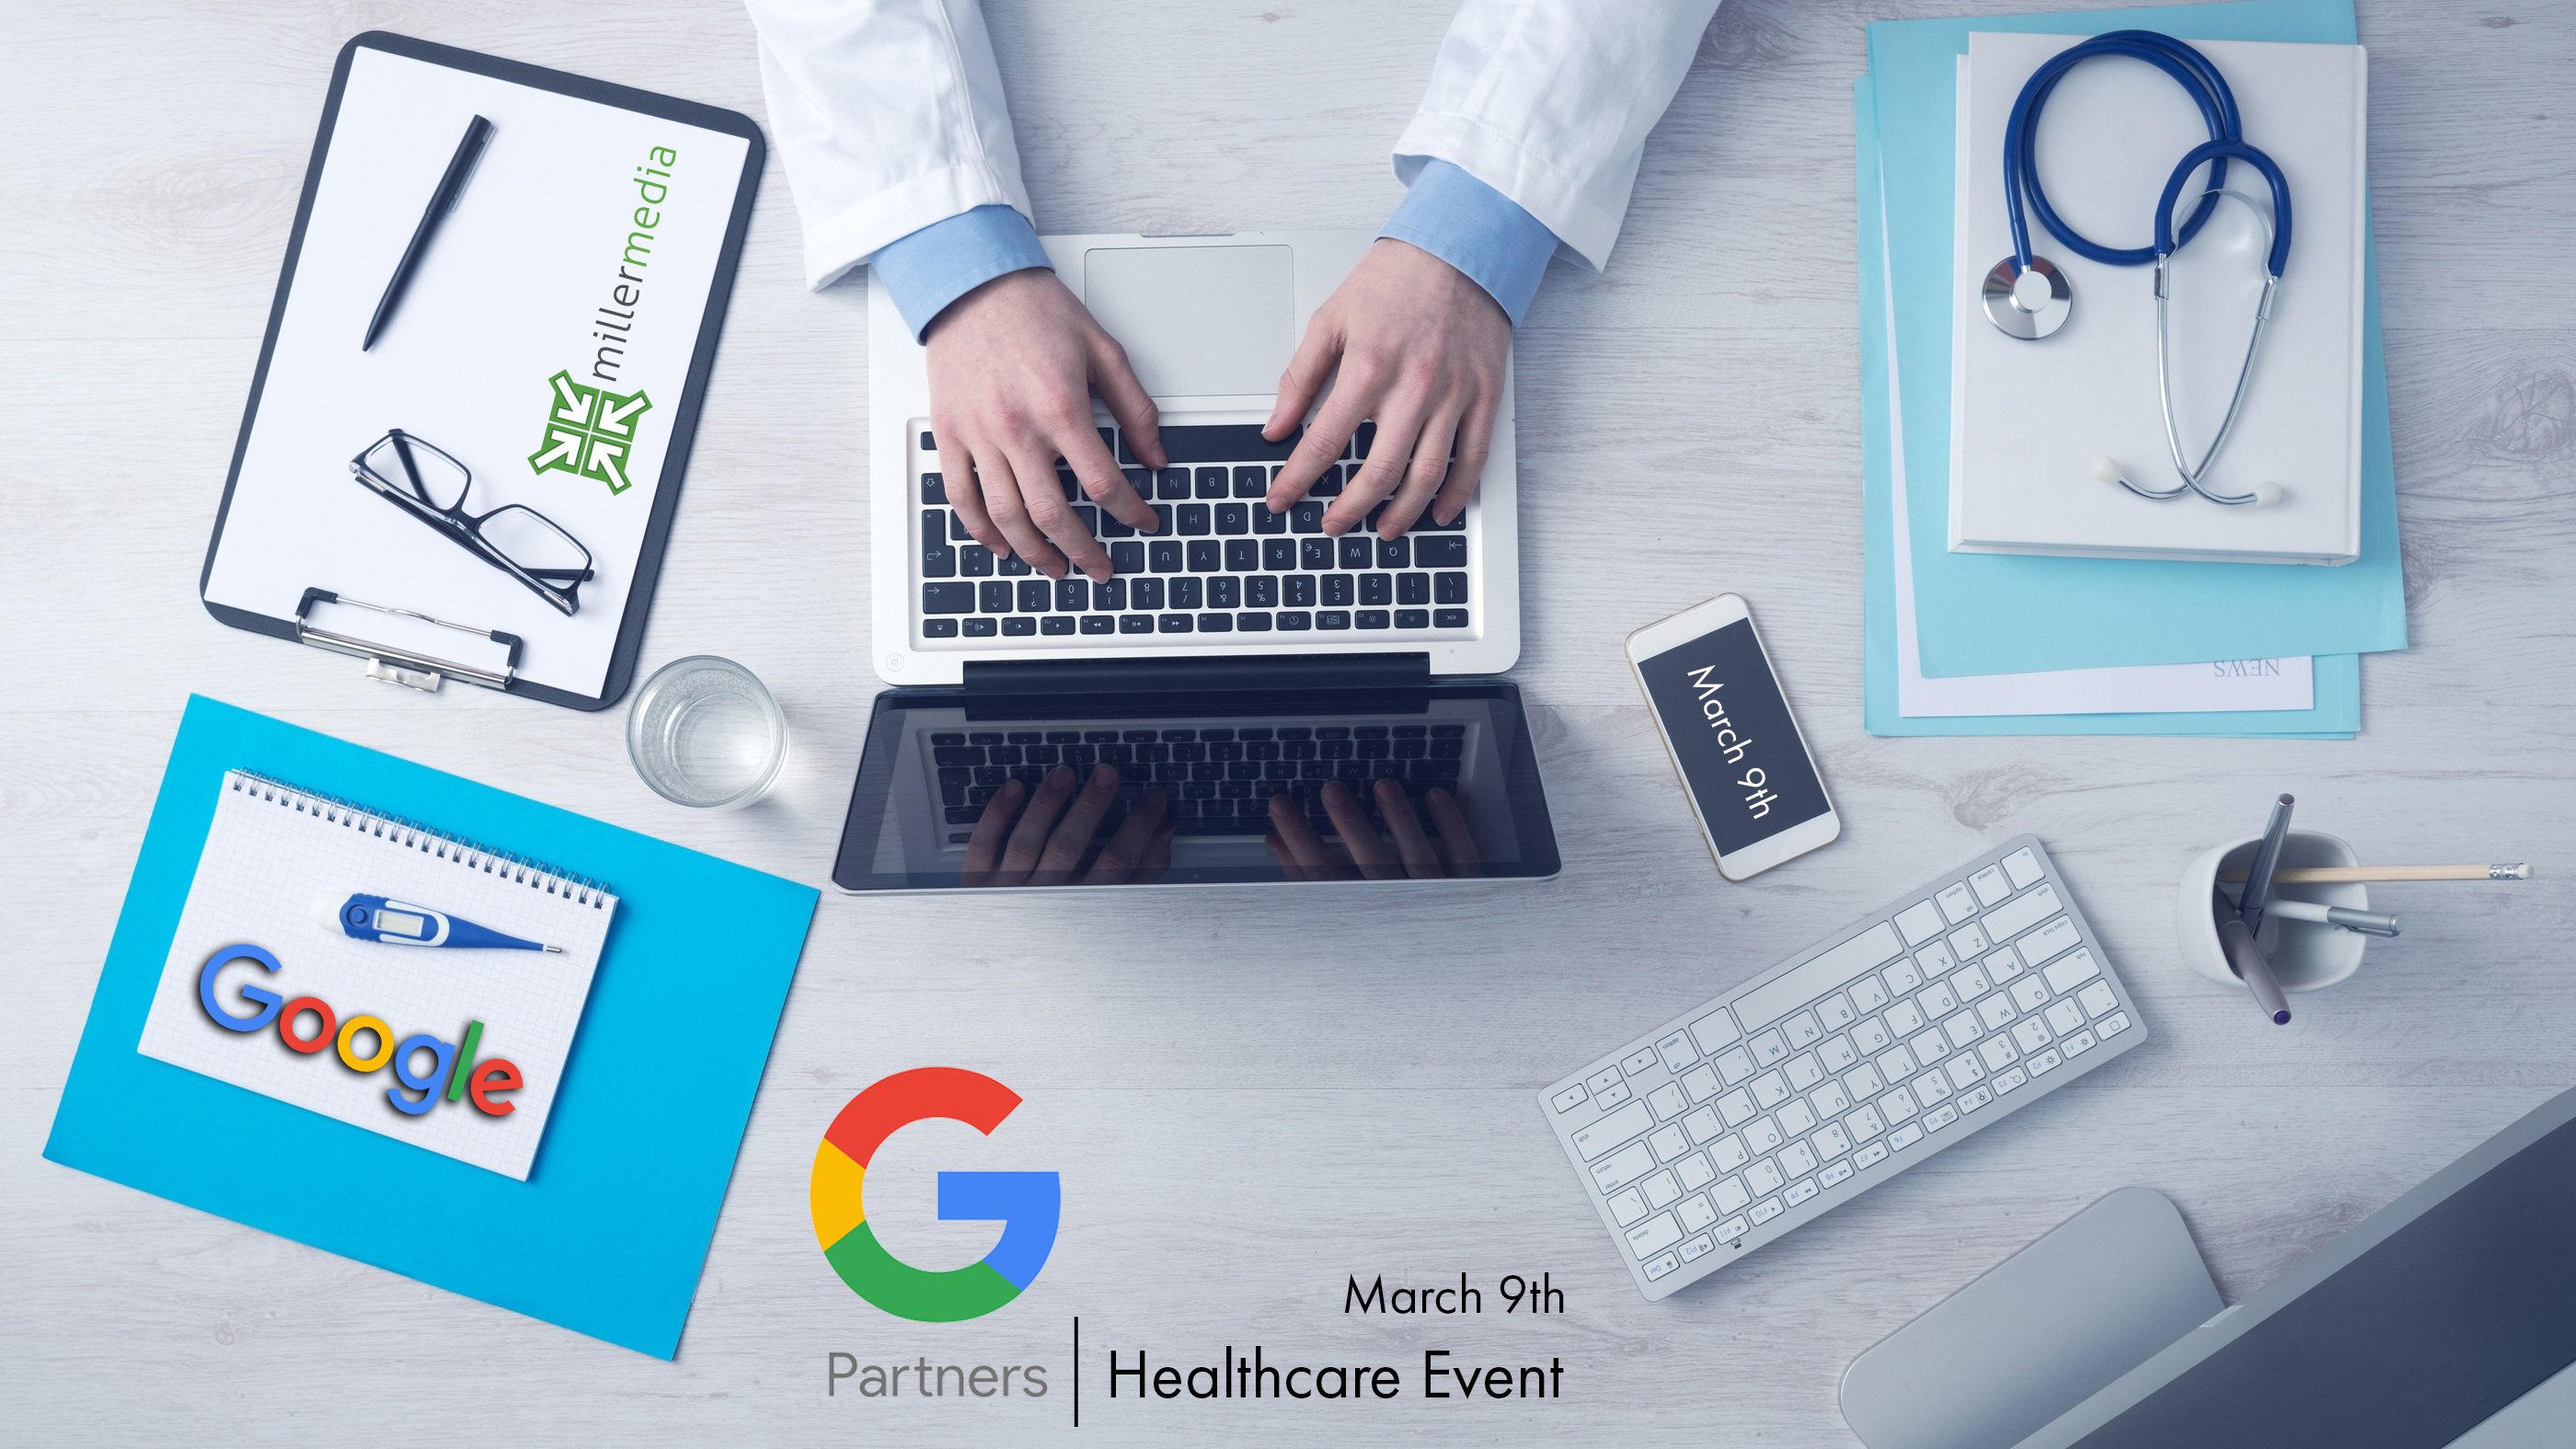 Google Healthcare Partner Event